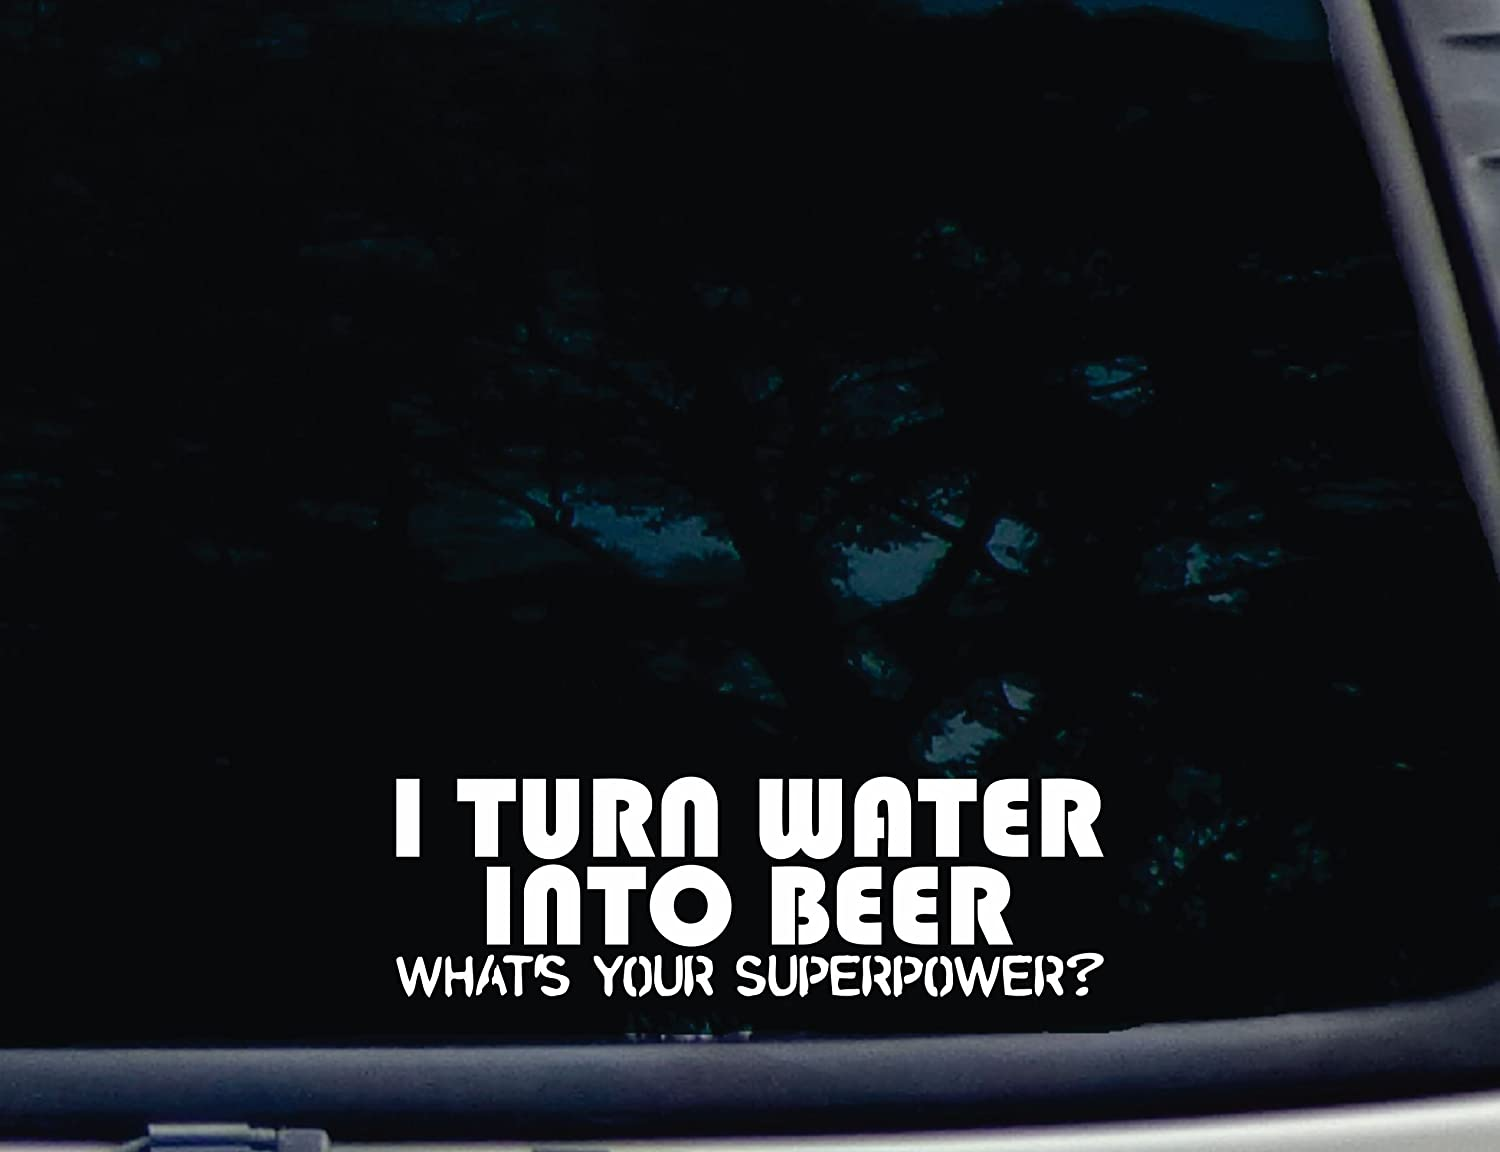 "I Turn Water into Beer What's Your Superpower? - 8"" x 2 1/2"" die Cut Vinyl Decal for Windows, Cars, Trucks, Tool Boxes, laptops, MacBook - virtually Any Hard, Smooth Surface. NOT Printed!"